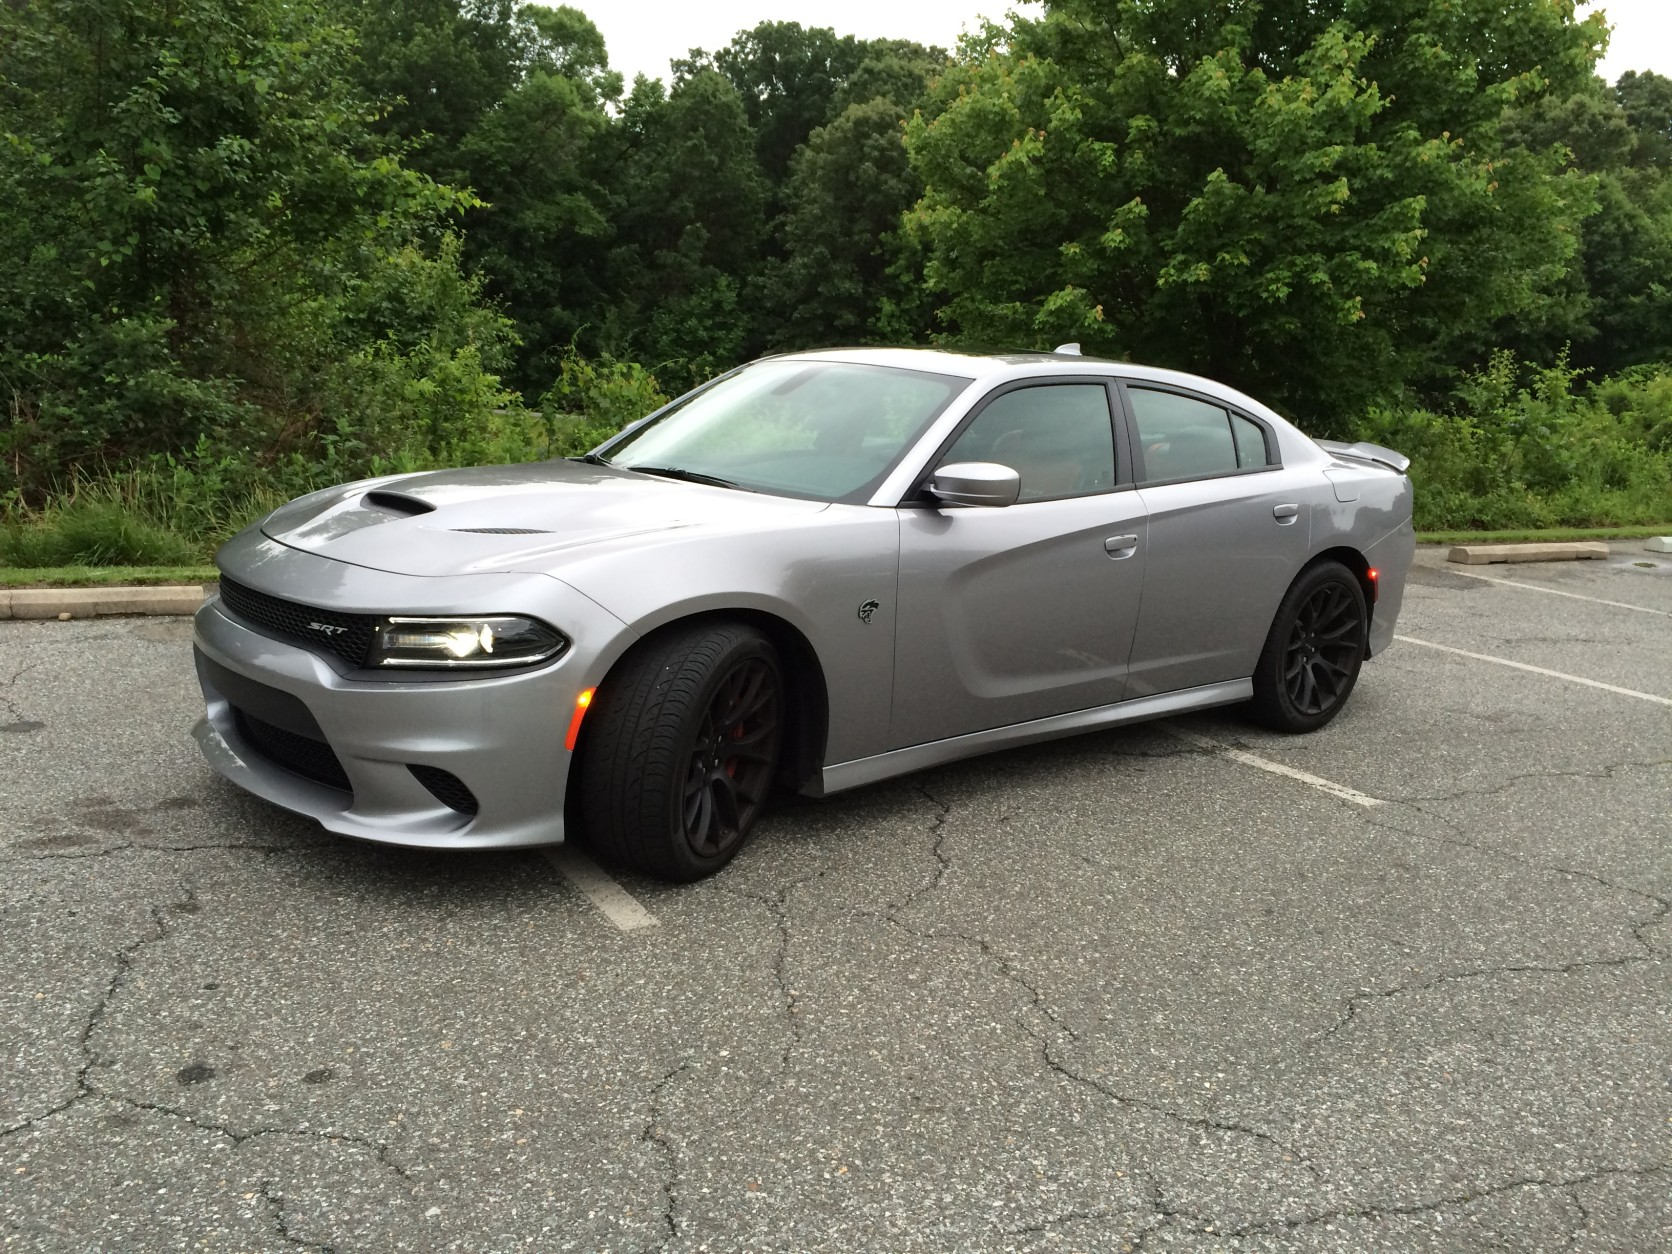 <h3>Dodge Charger Hemi</h3> <p>This large 4-door sedan tops the list of most stolen cars, with a whole-vehicle — that is, stolen outright as opposed to stripped for parts — claim rate that is 5.4 times the national average.</p> <p>The low-end for horsepower in a Charger model that boasts a Hemi engine is an impressive 370hp. Some models crank that to an insane 707hp. It&#8217;s clear why that might be tempting to a potential car thief.</p> <p>Don&#8217;t rest easy just because you didn&#8217;t opt for the top-of-the-line model. The base Charger is the 14th most stolen car on the list and the Charger 4WD is 11th.</p>